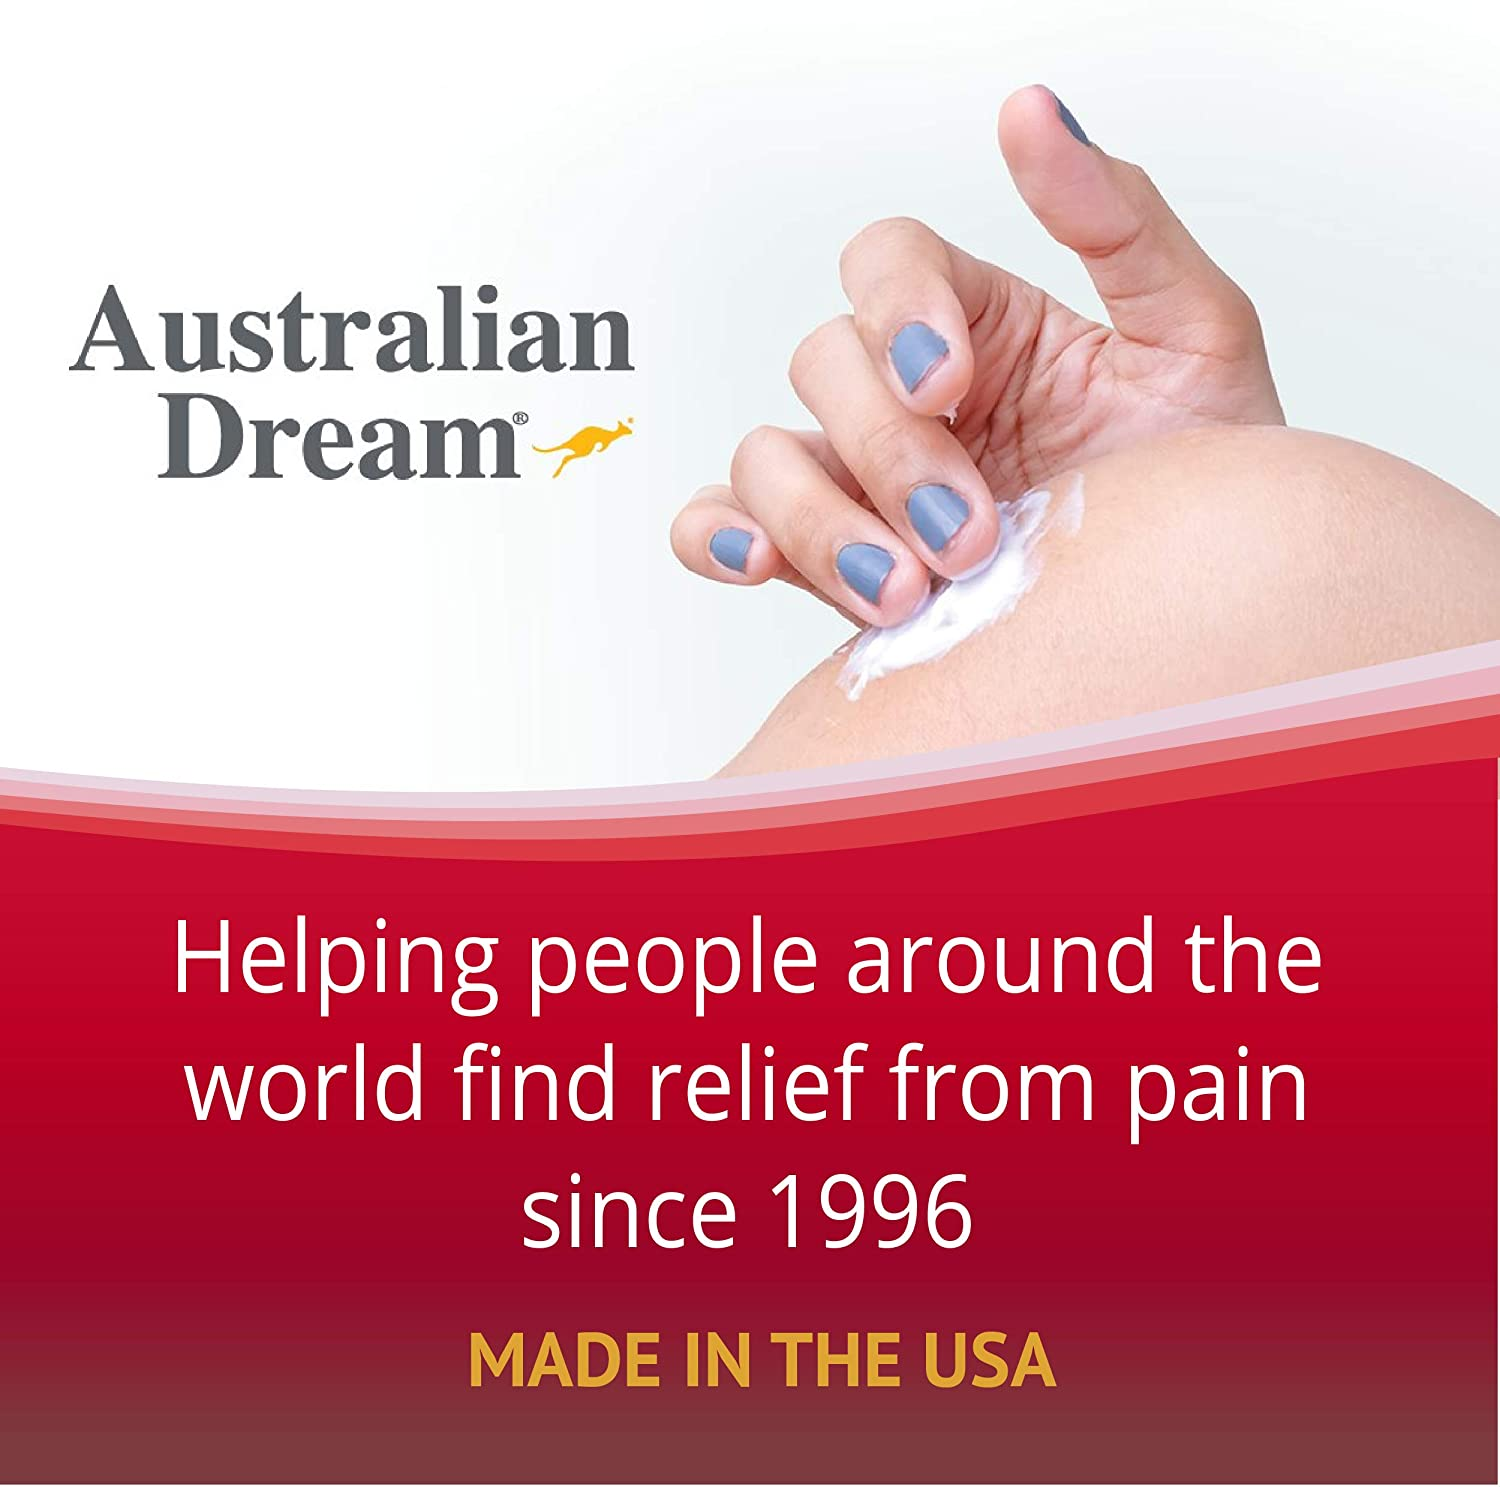 Australian Dream Arthritis Pain Relief Cream 2 oz Tube